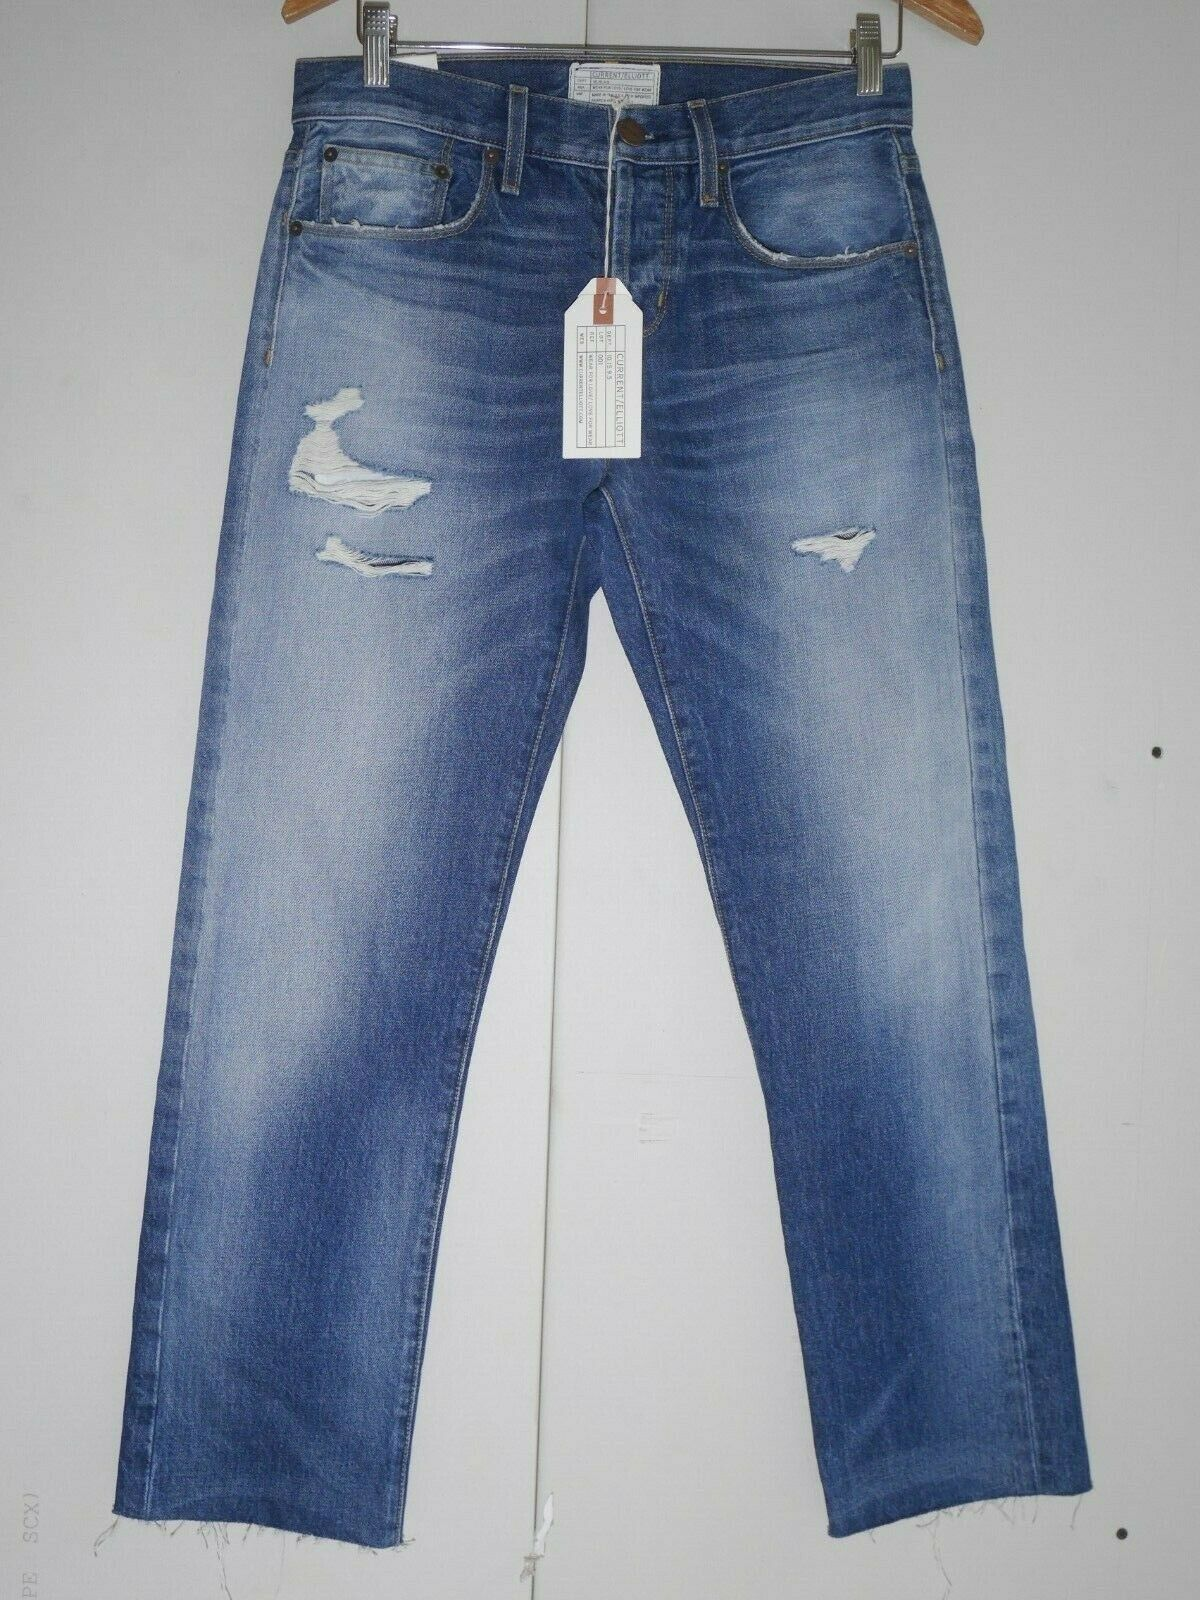 248 NEW The Credver Straight Leg Jeans in Zephyr Destroy W Cut Hem - Size 26